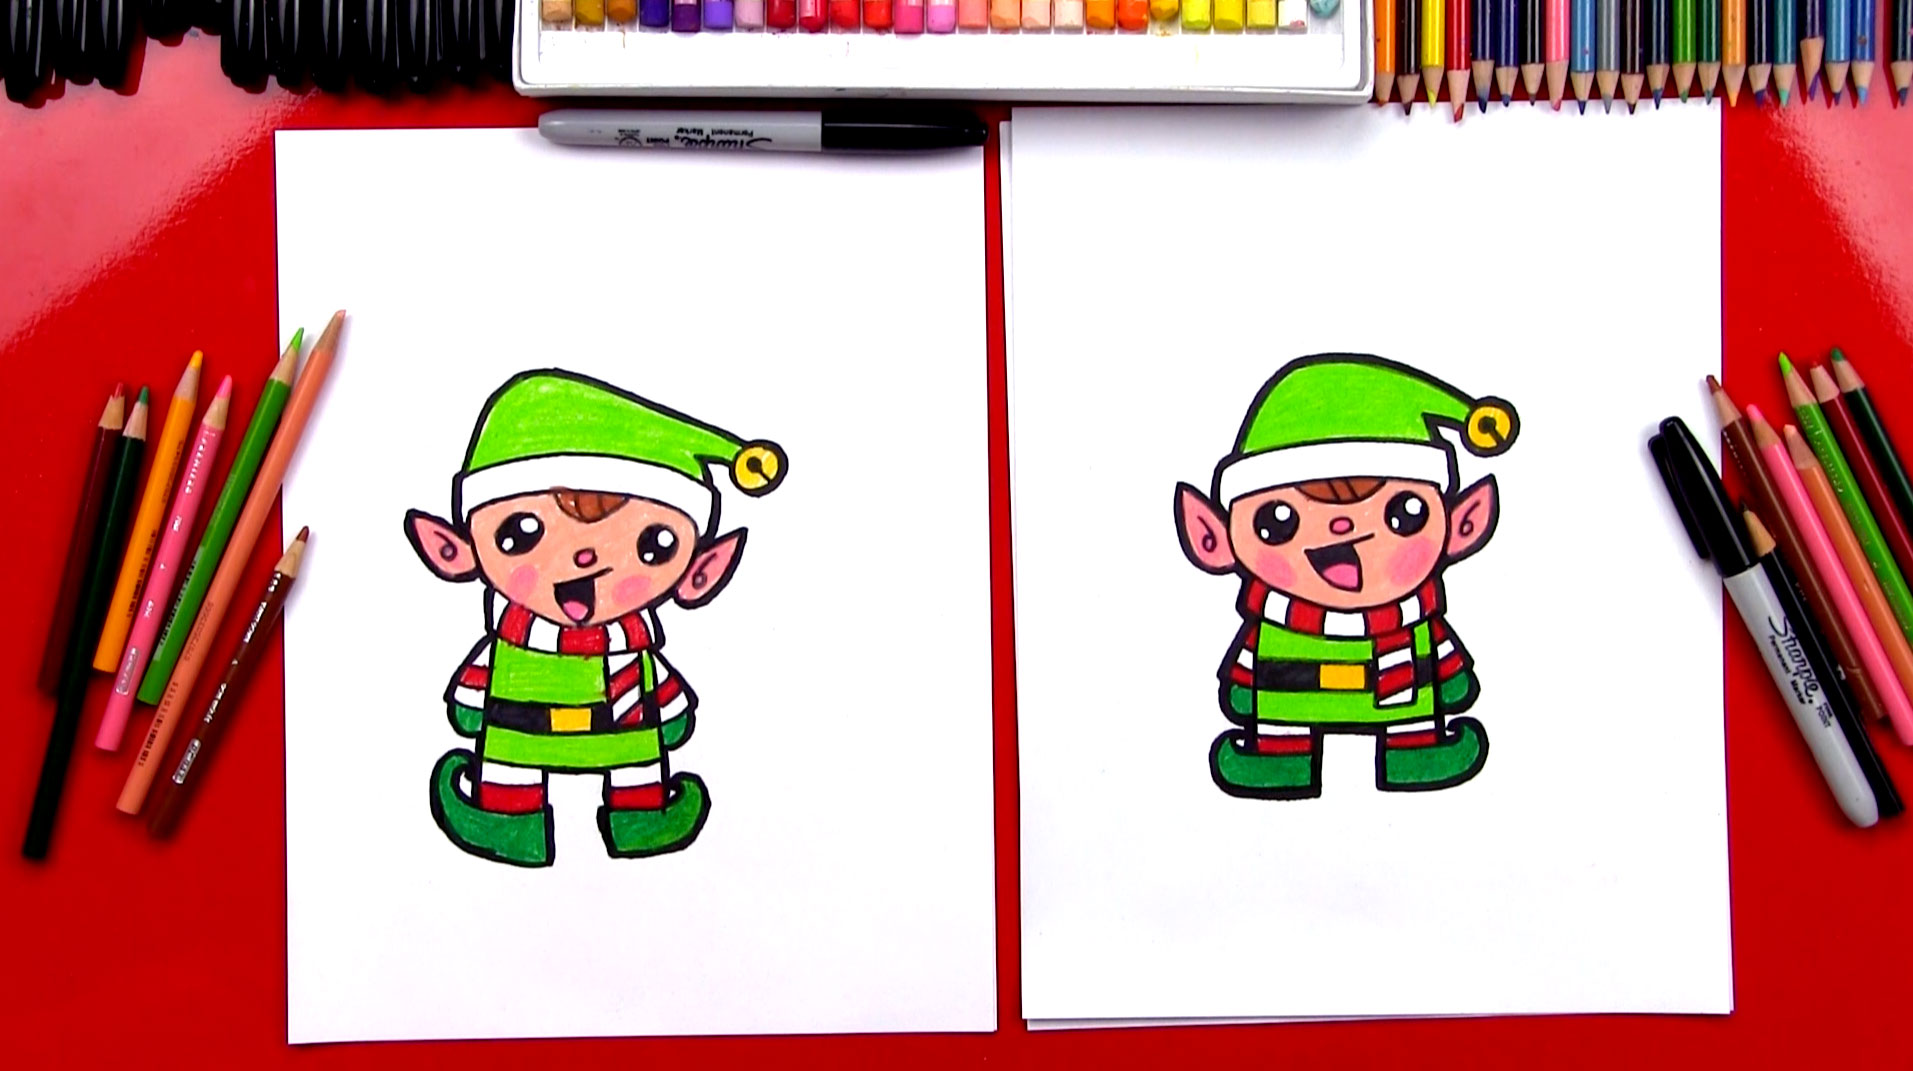 How To Draw A Cartoon Christmas Elf - Art For Kids Hub -